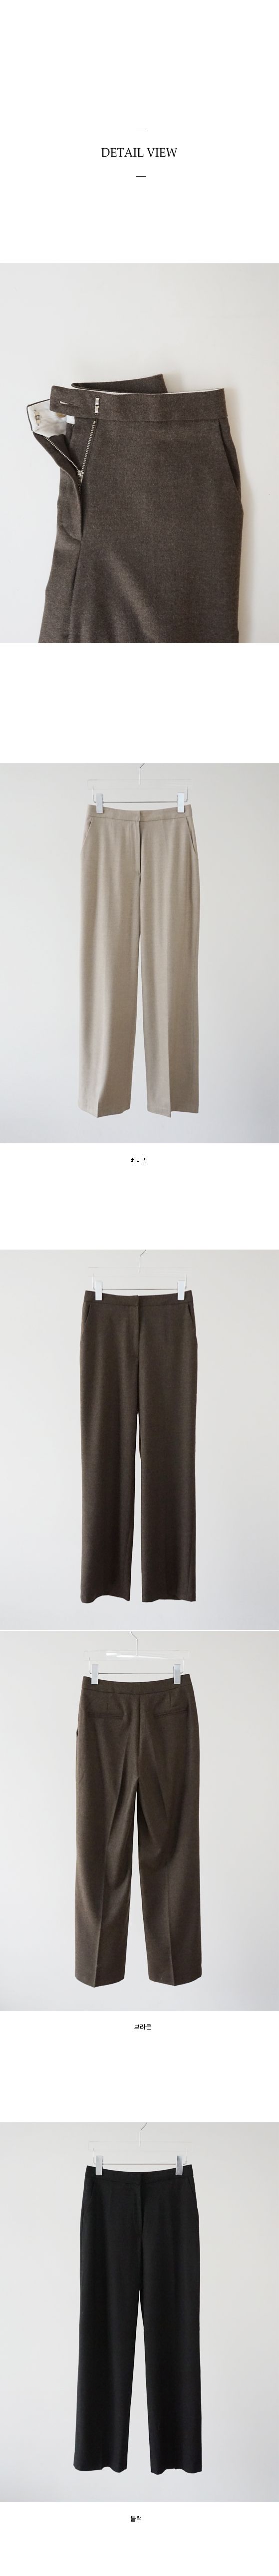 adorable formal slacks